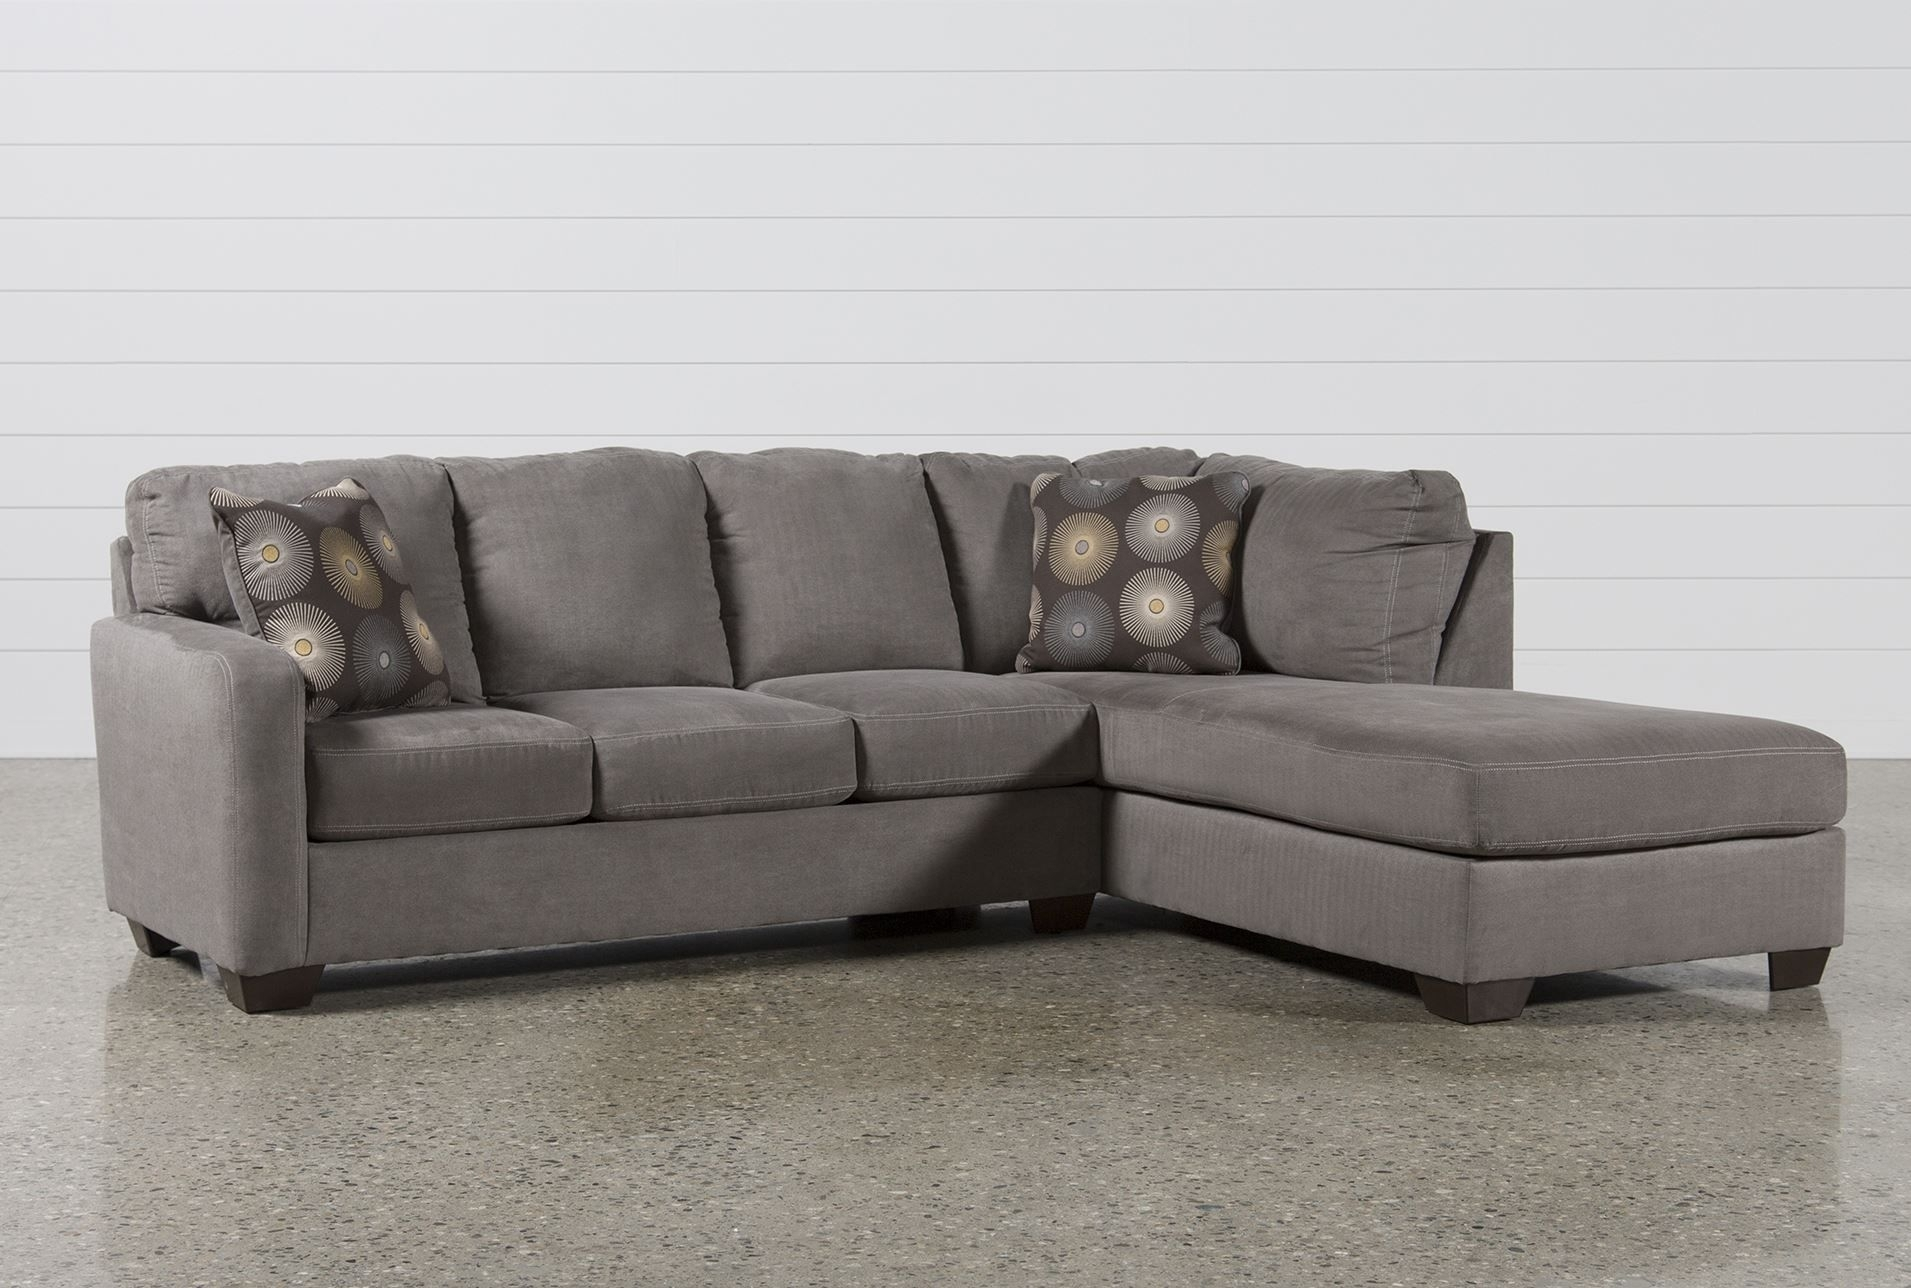 Zella Charcoal 2 Piece Sectional W/raf Chaise | Living Spaces with regard to Avery 2 Piece Sectionals With Raf Armless Chaise